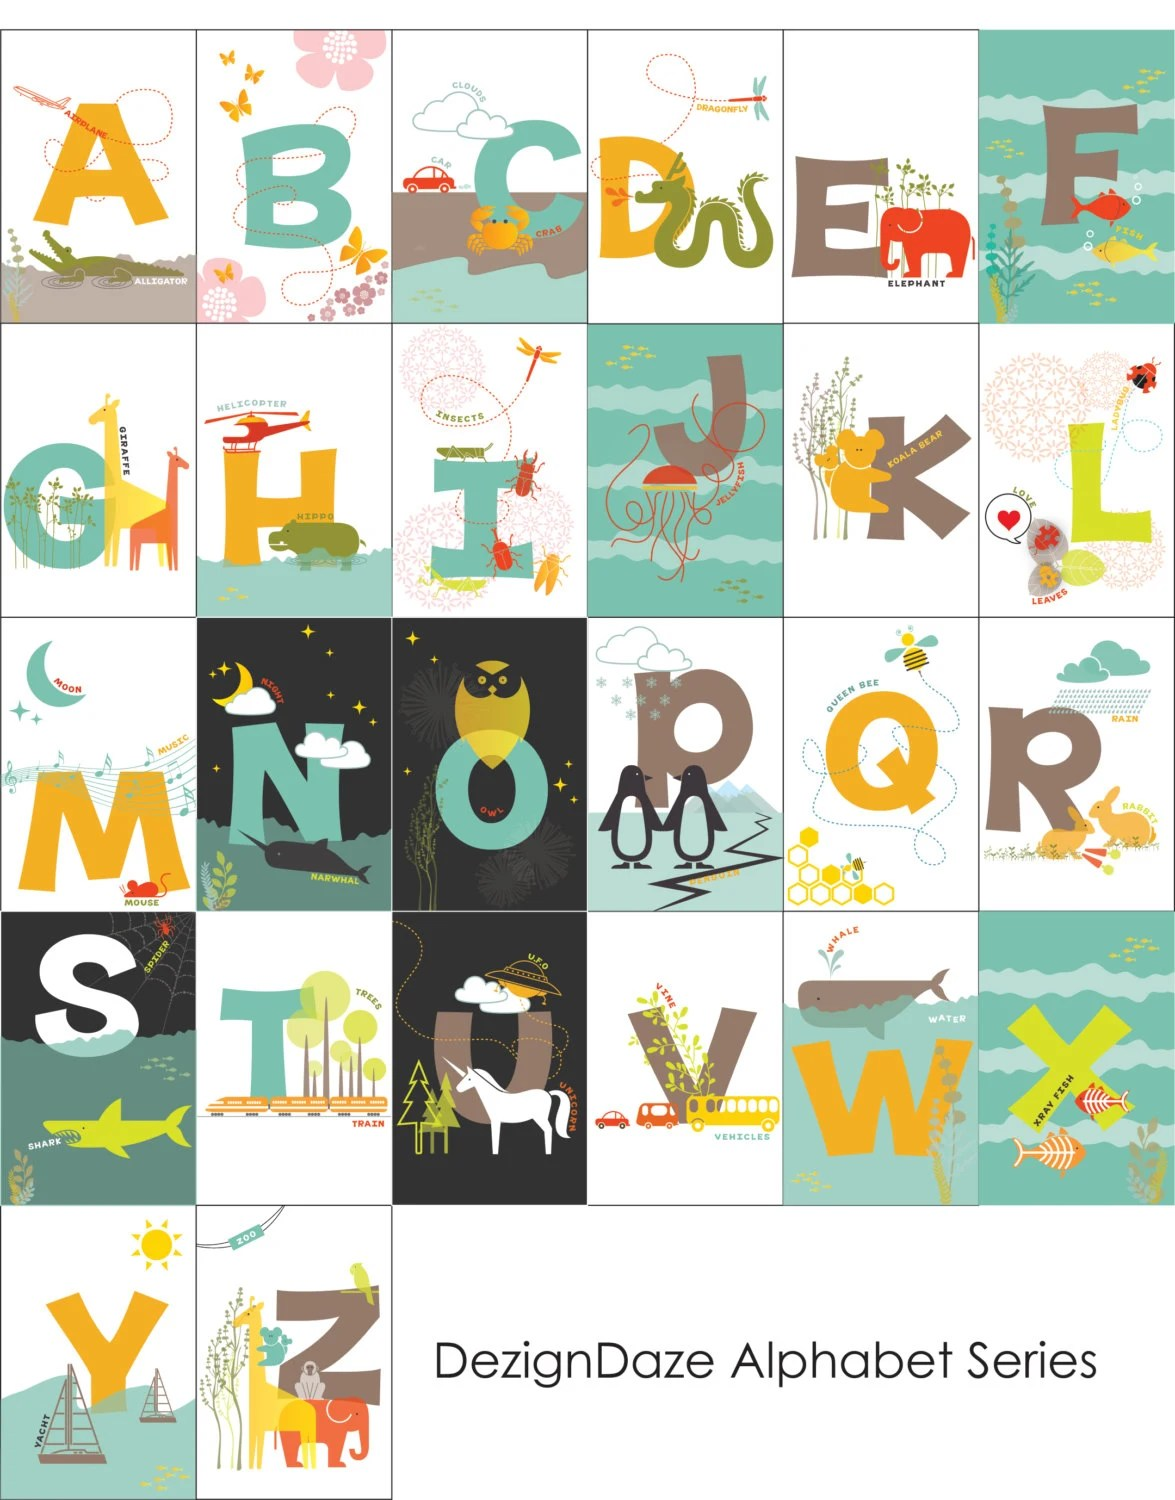 Printable Abc Alphabet Flash Cards All 26 Alphabets By Dezigndaze